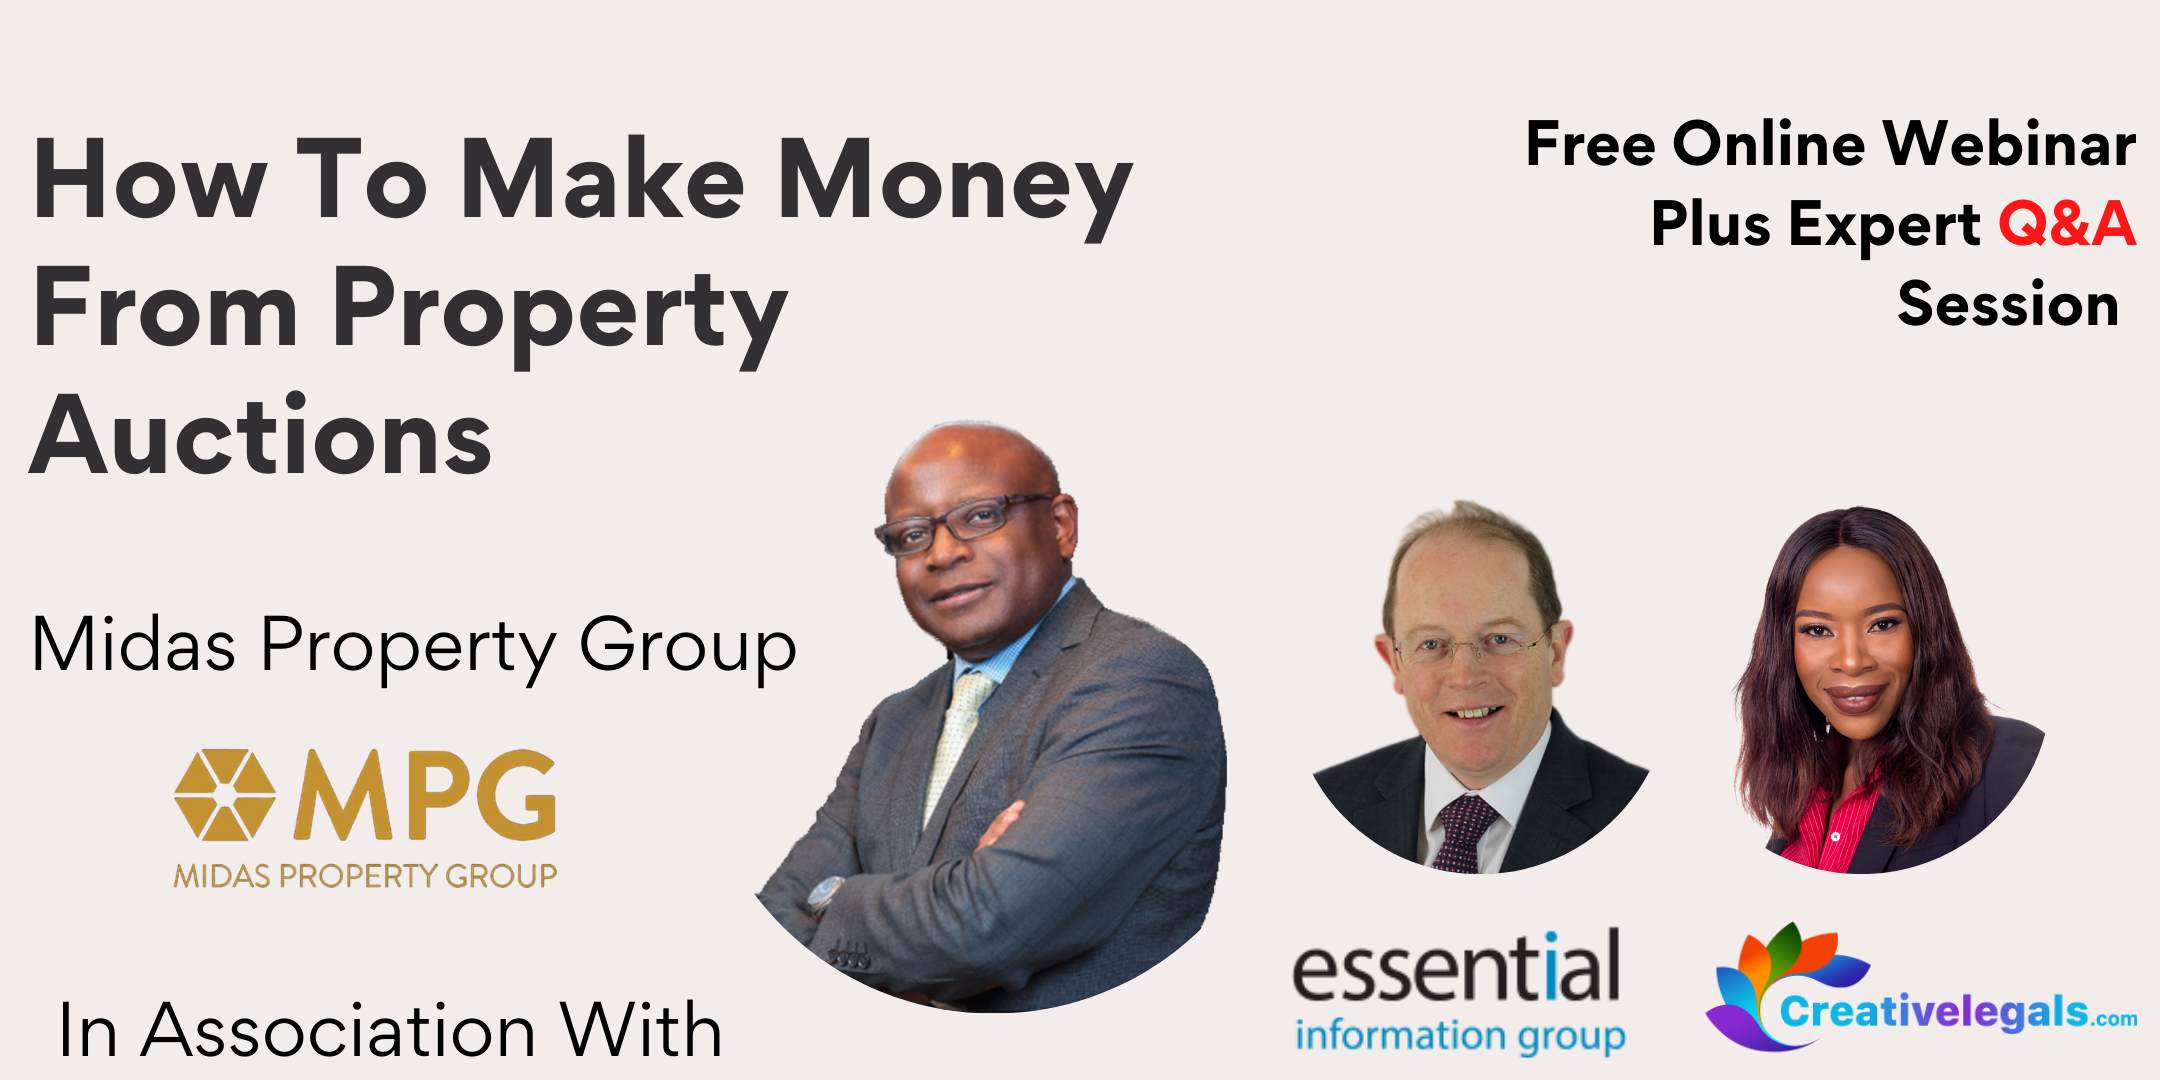 Property Auction Workshop - How To Make Money From Property Auctions